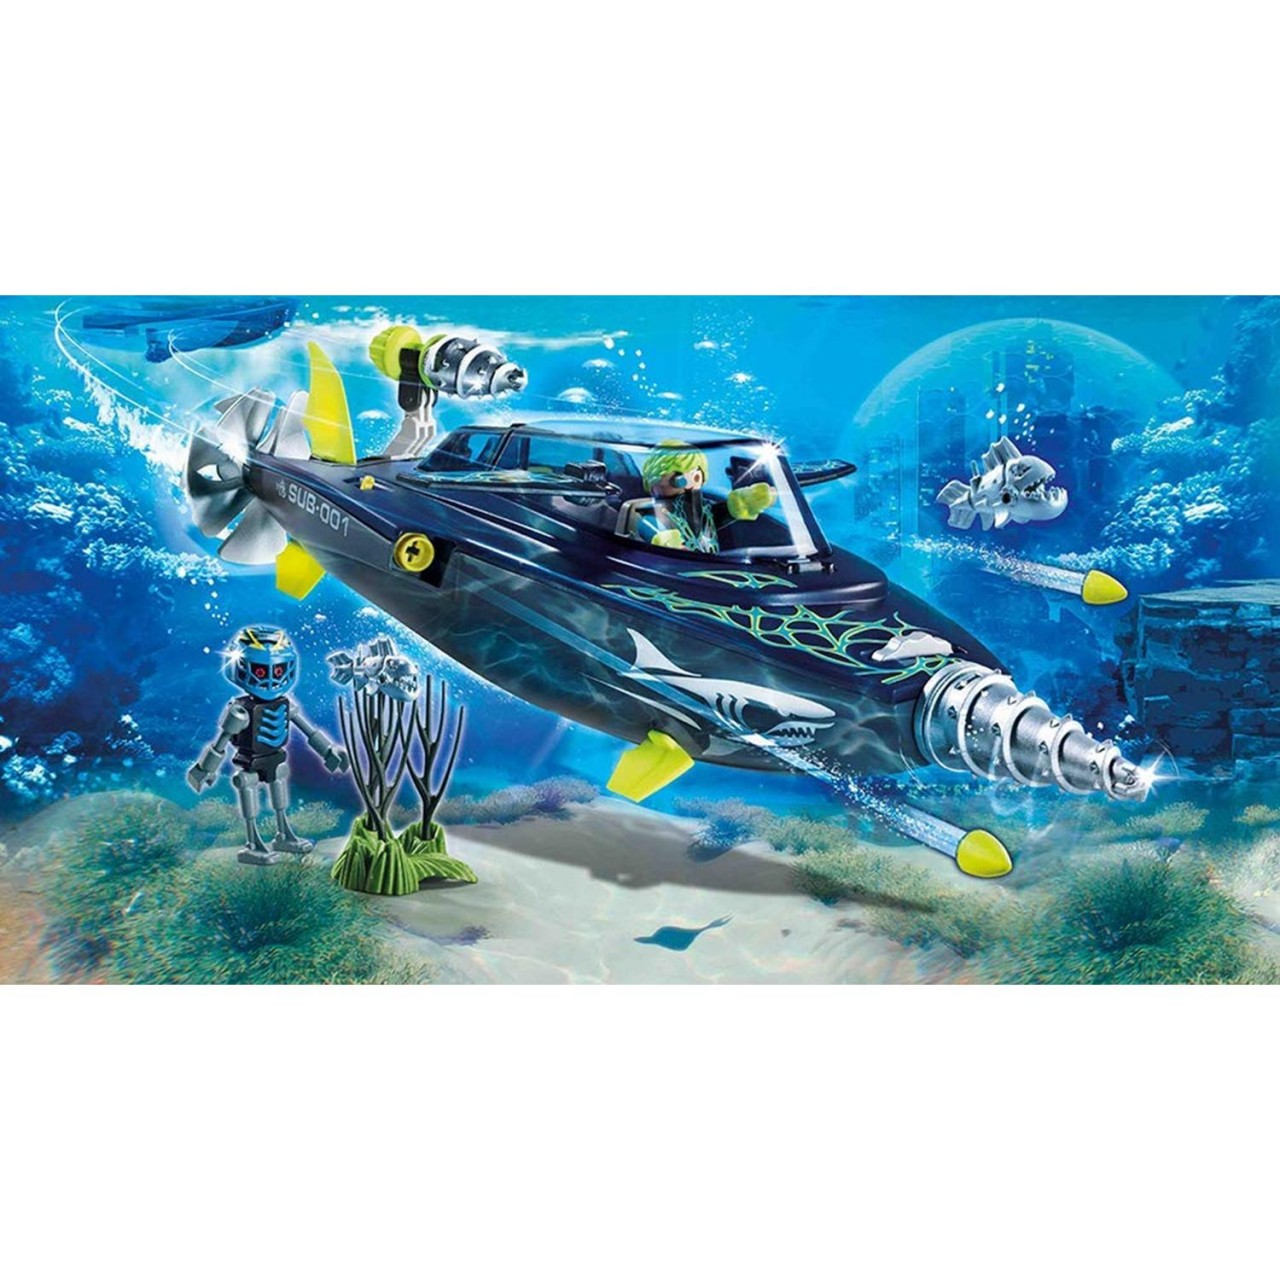 Playmobil 70005 TEAM S.H.A.R.K. Drill Destroyer